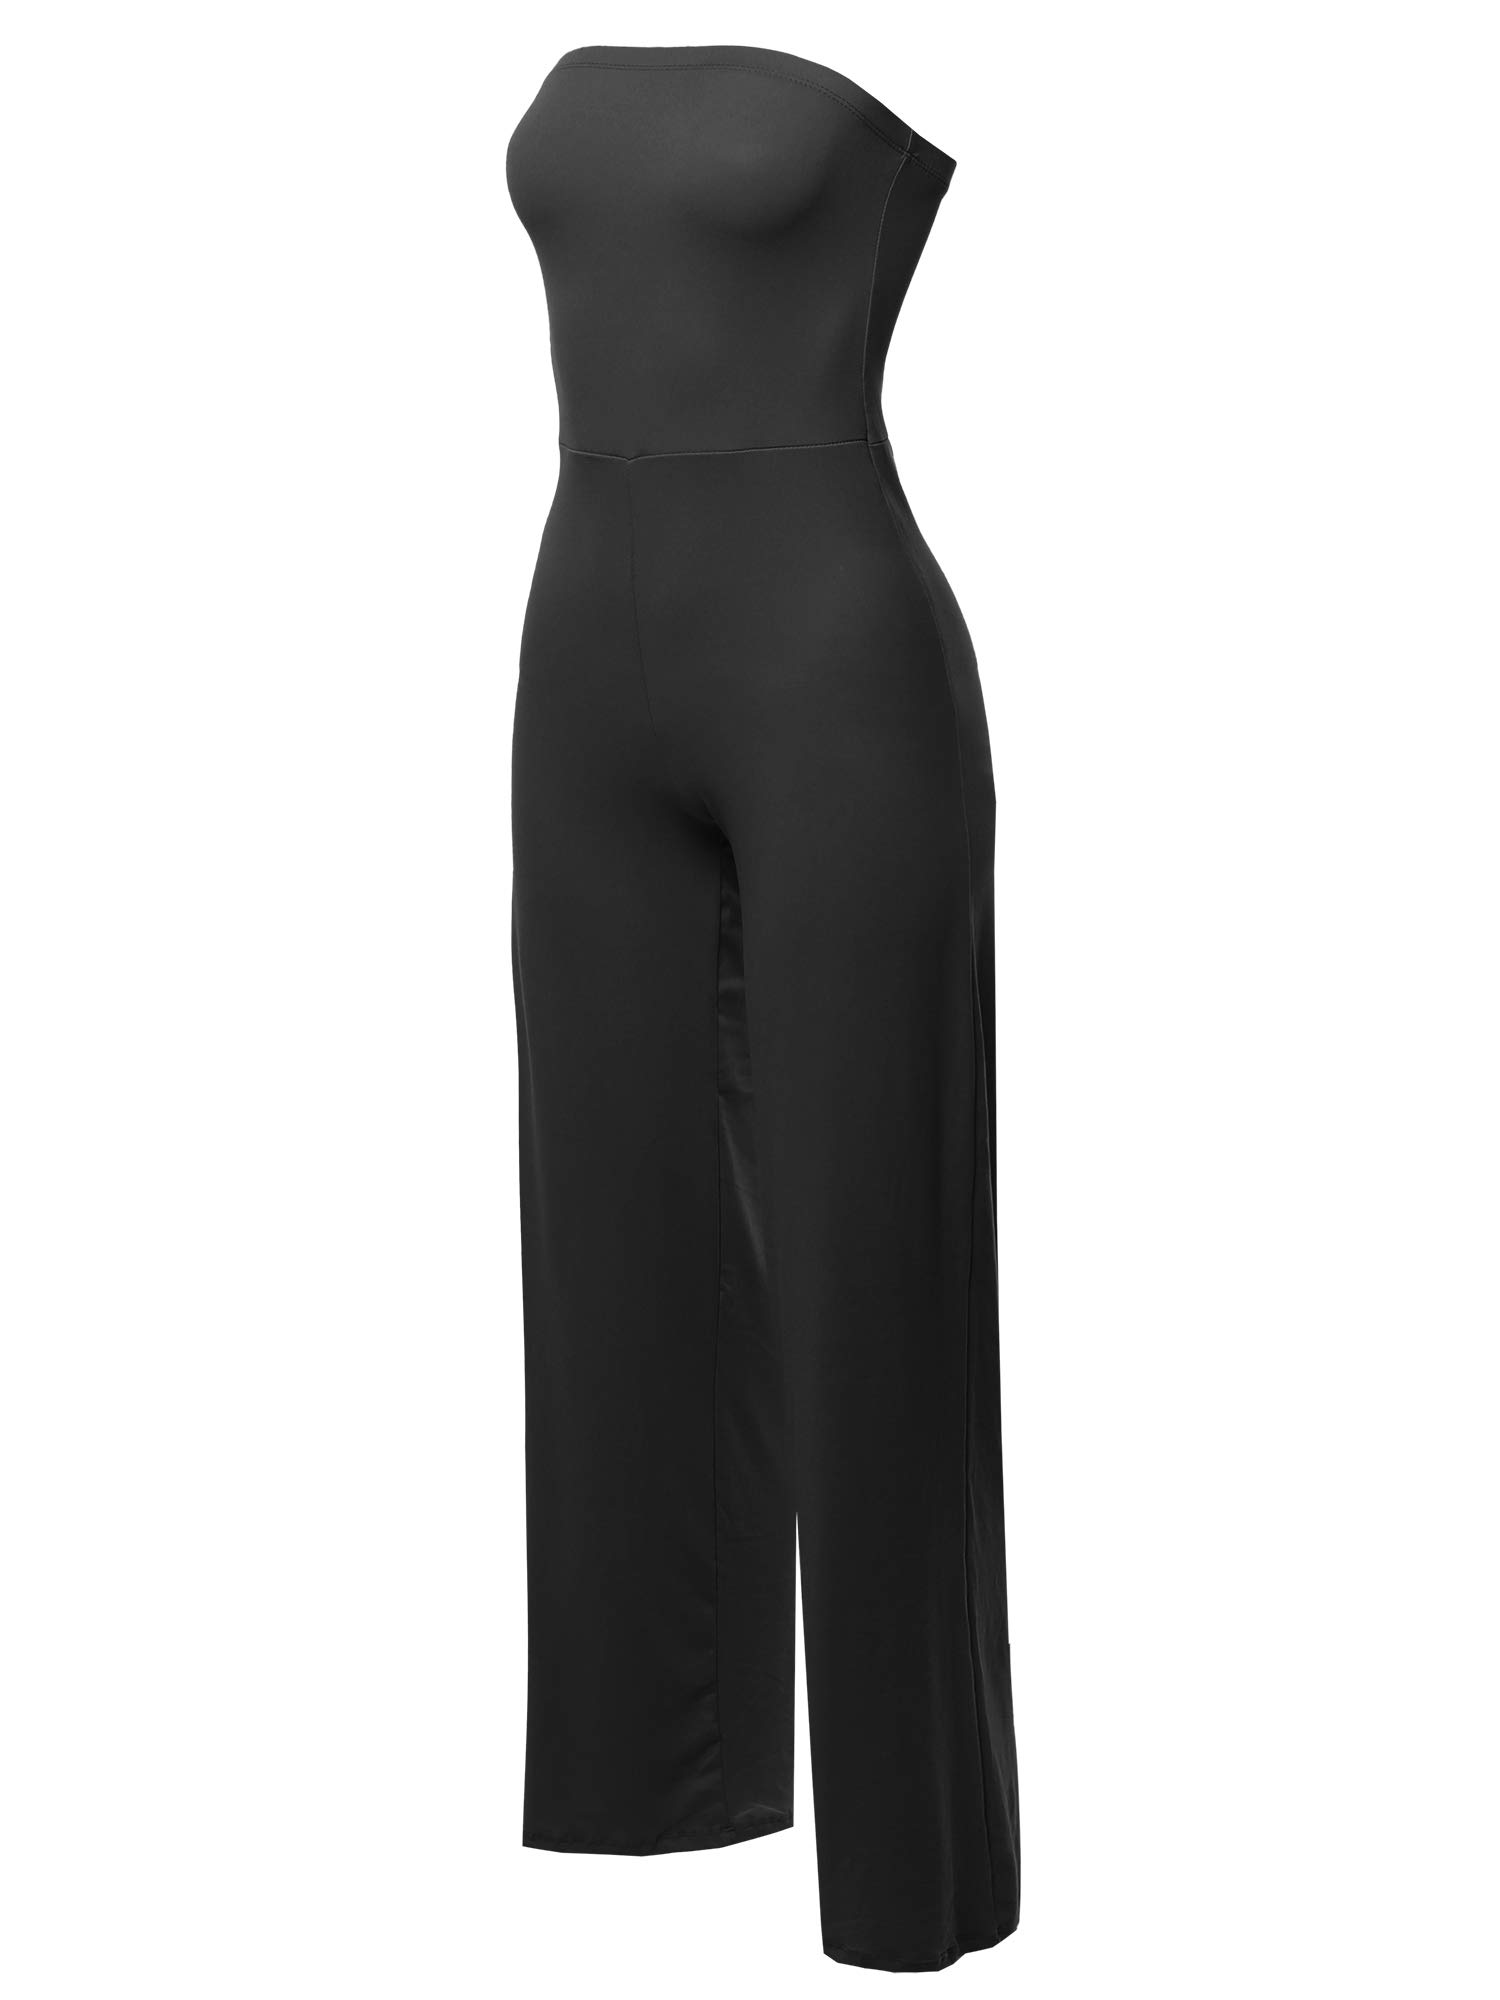 Made by Emma Casual Tube Top Strapless Stretchable Long Wide Leg Jumpsuit Black M